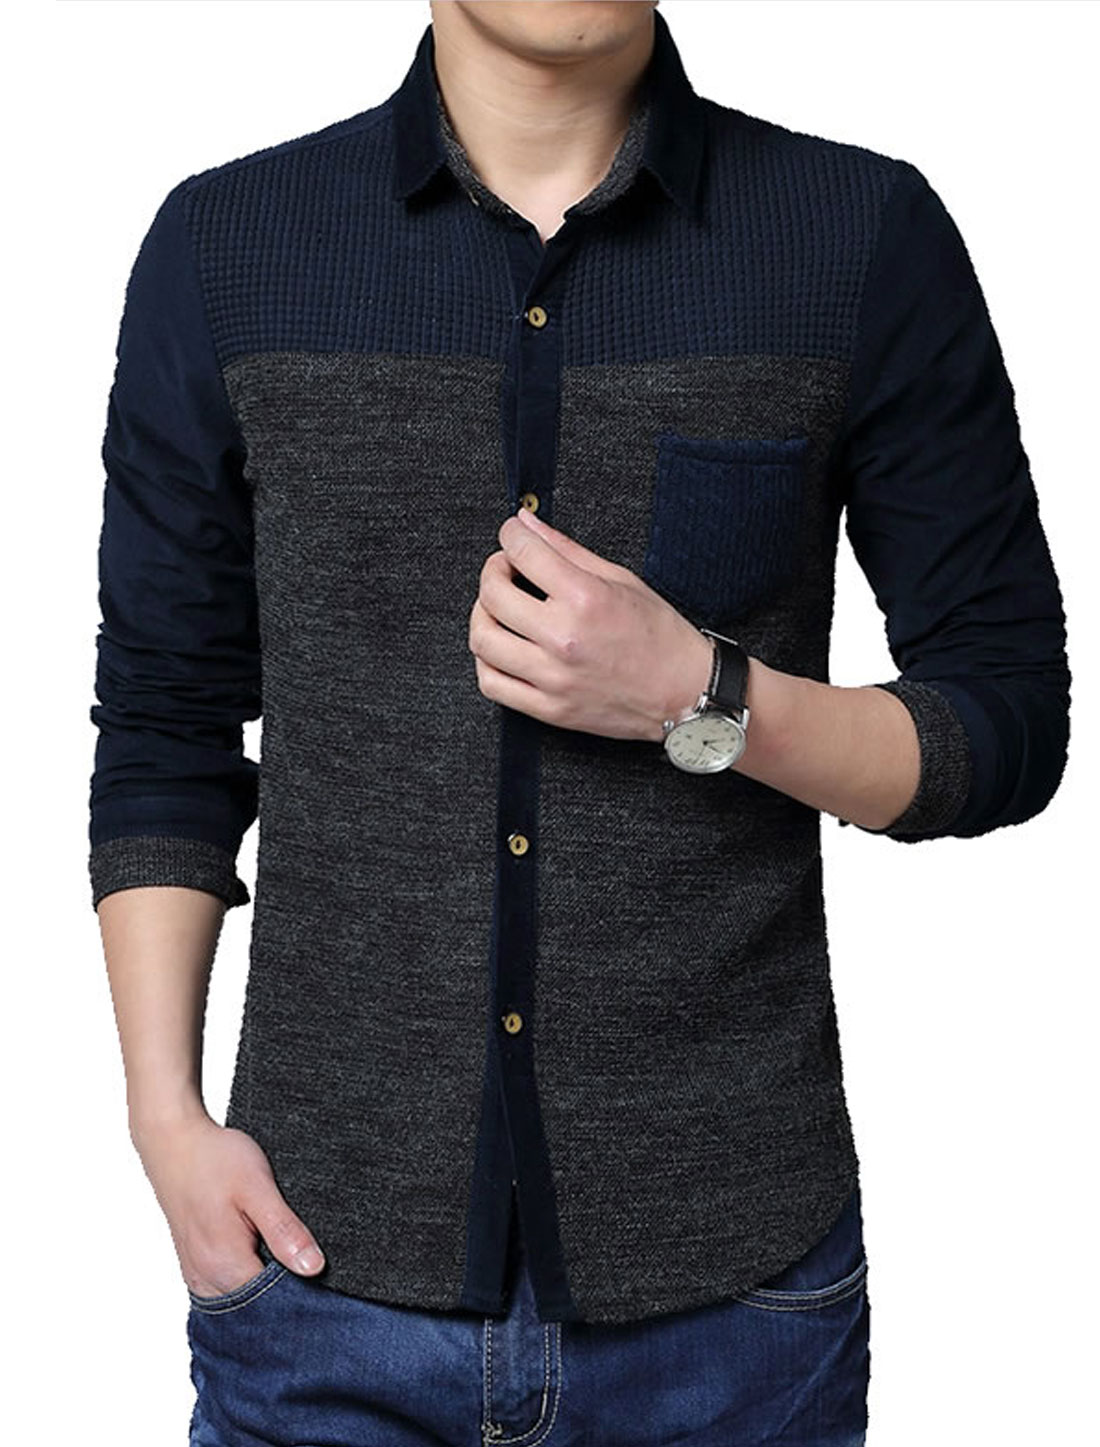 Men Long Sleeve One Chest Pocket Single Breasted Knit Shirt Dark Gray M